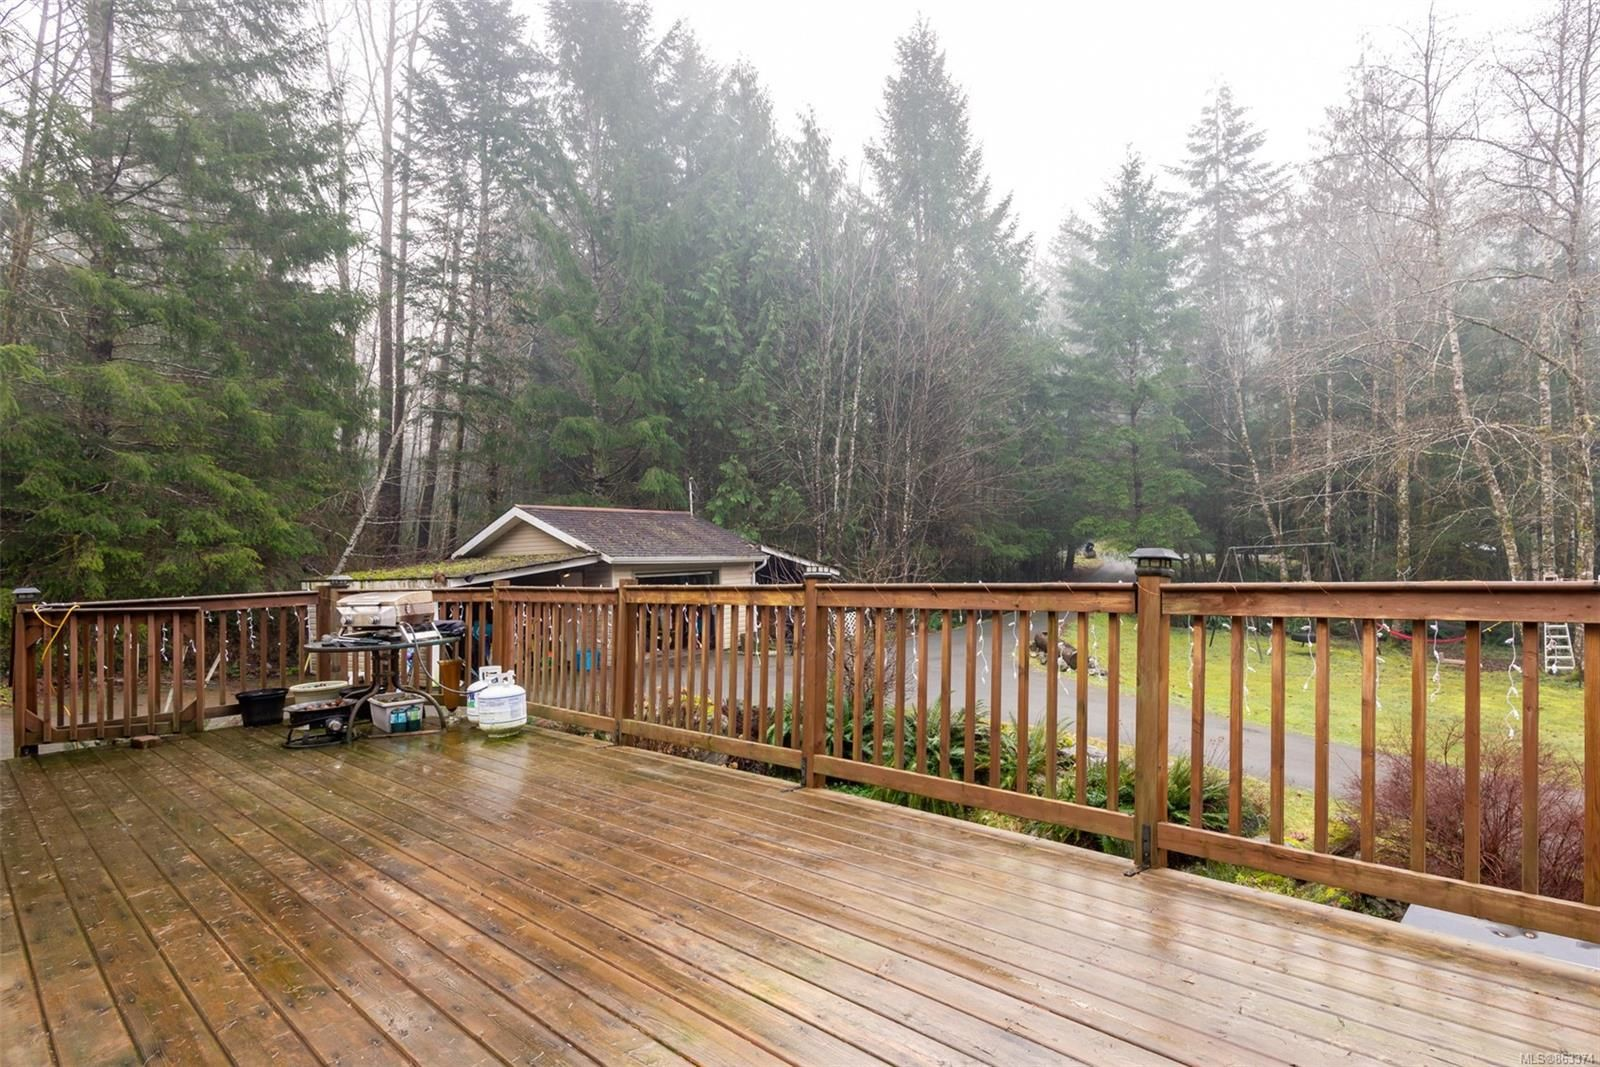 Photo 6: Photos: 572 Sabre Rd in : NI Kelsey Bay/Sayward House for sale (North Island)  : MLS®# 863374